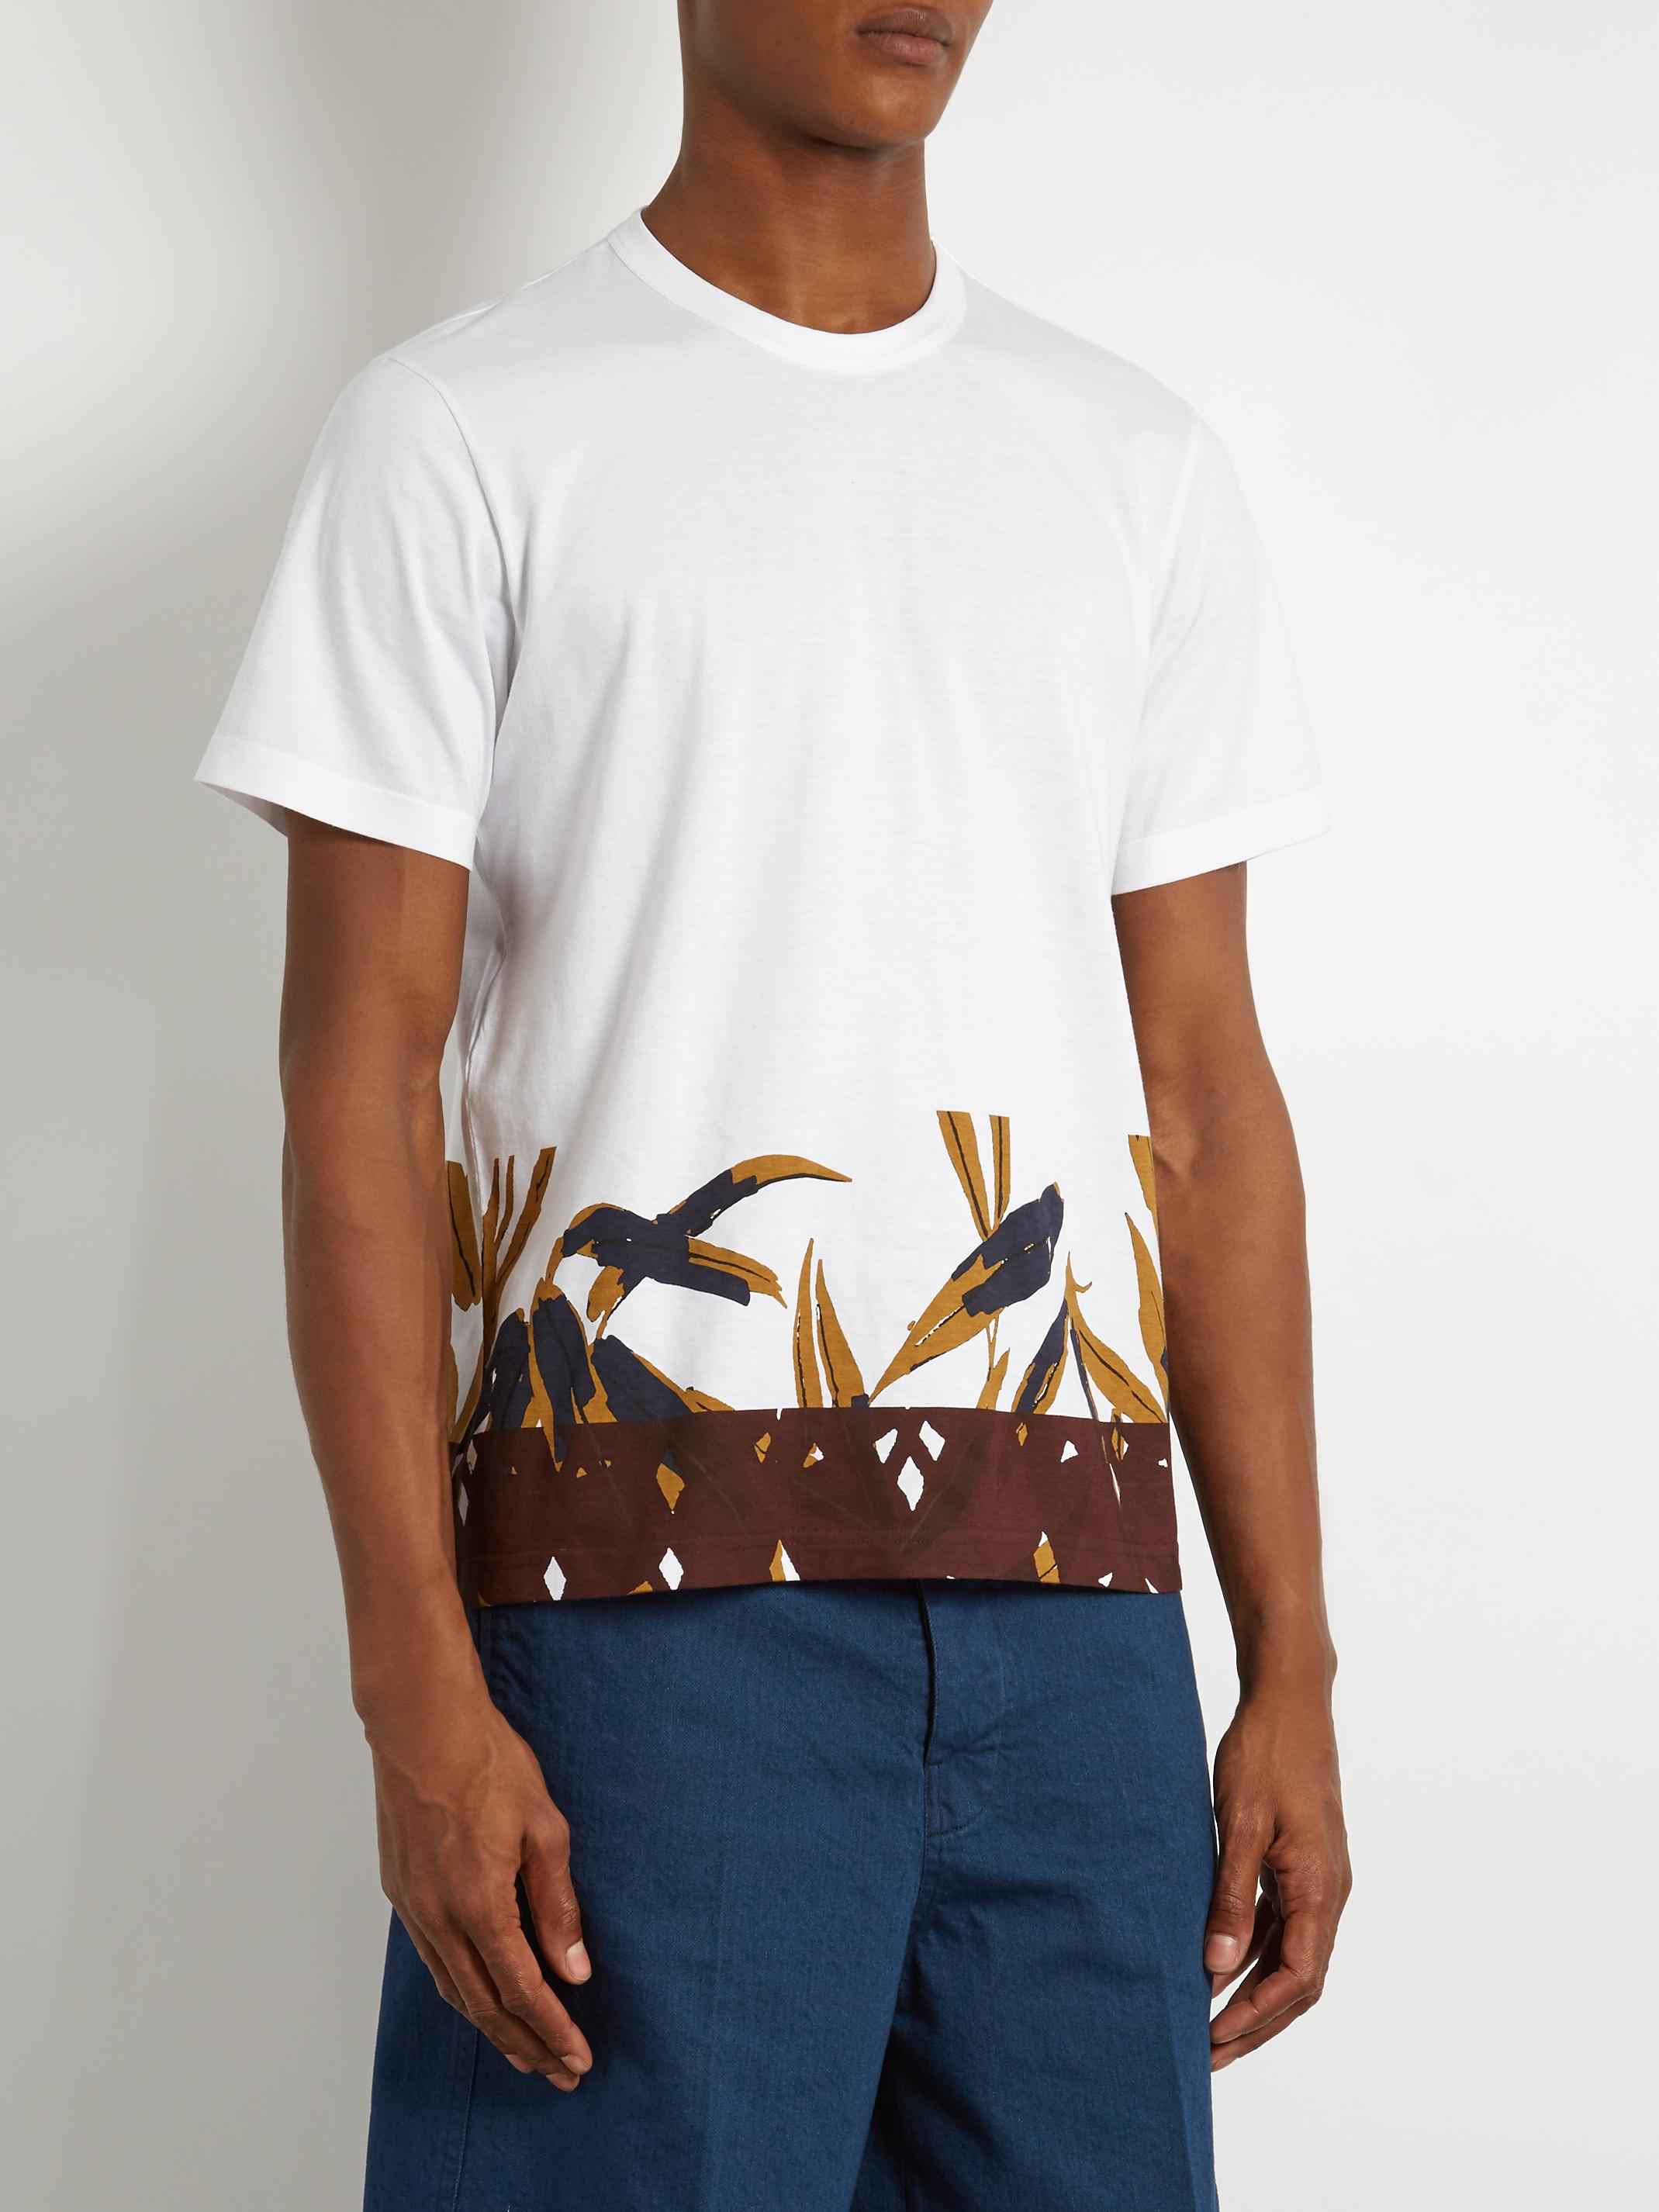 Marni bamboo print cotton jersey t shirt in white for men for Bamboo t shirt printing